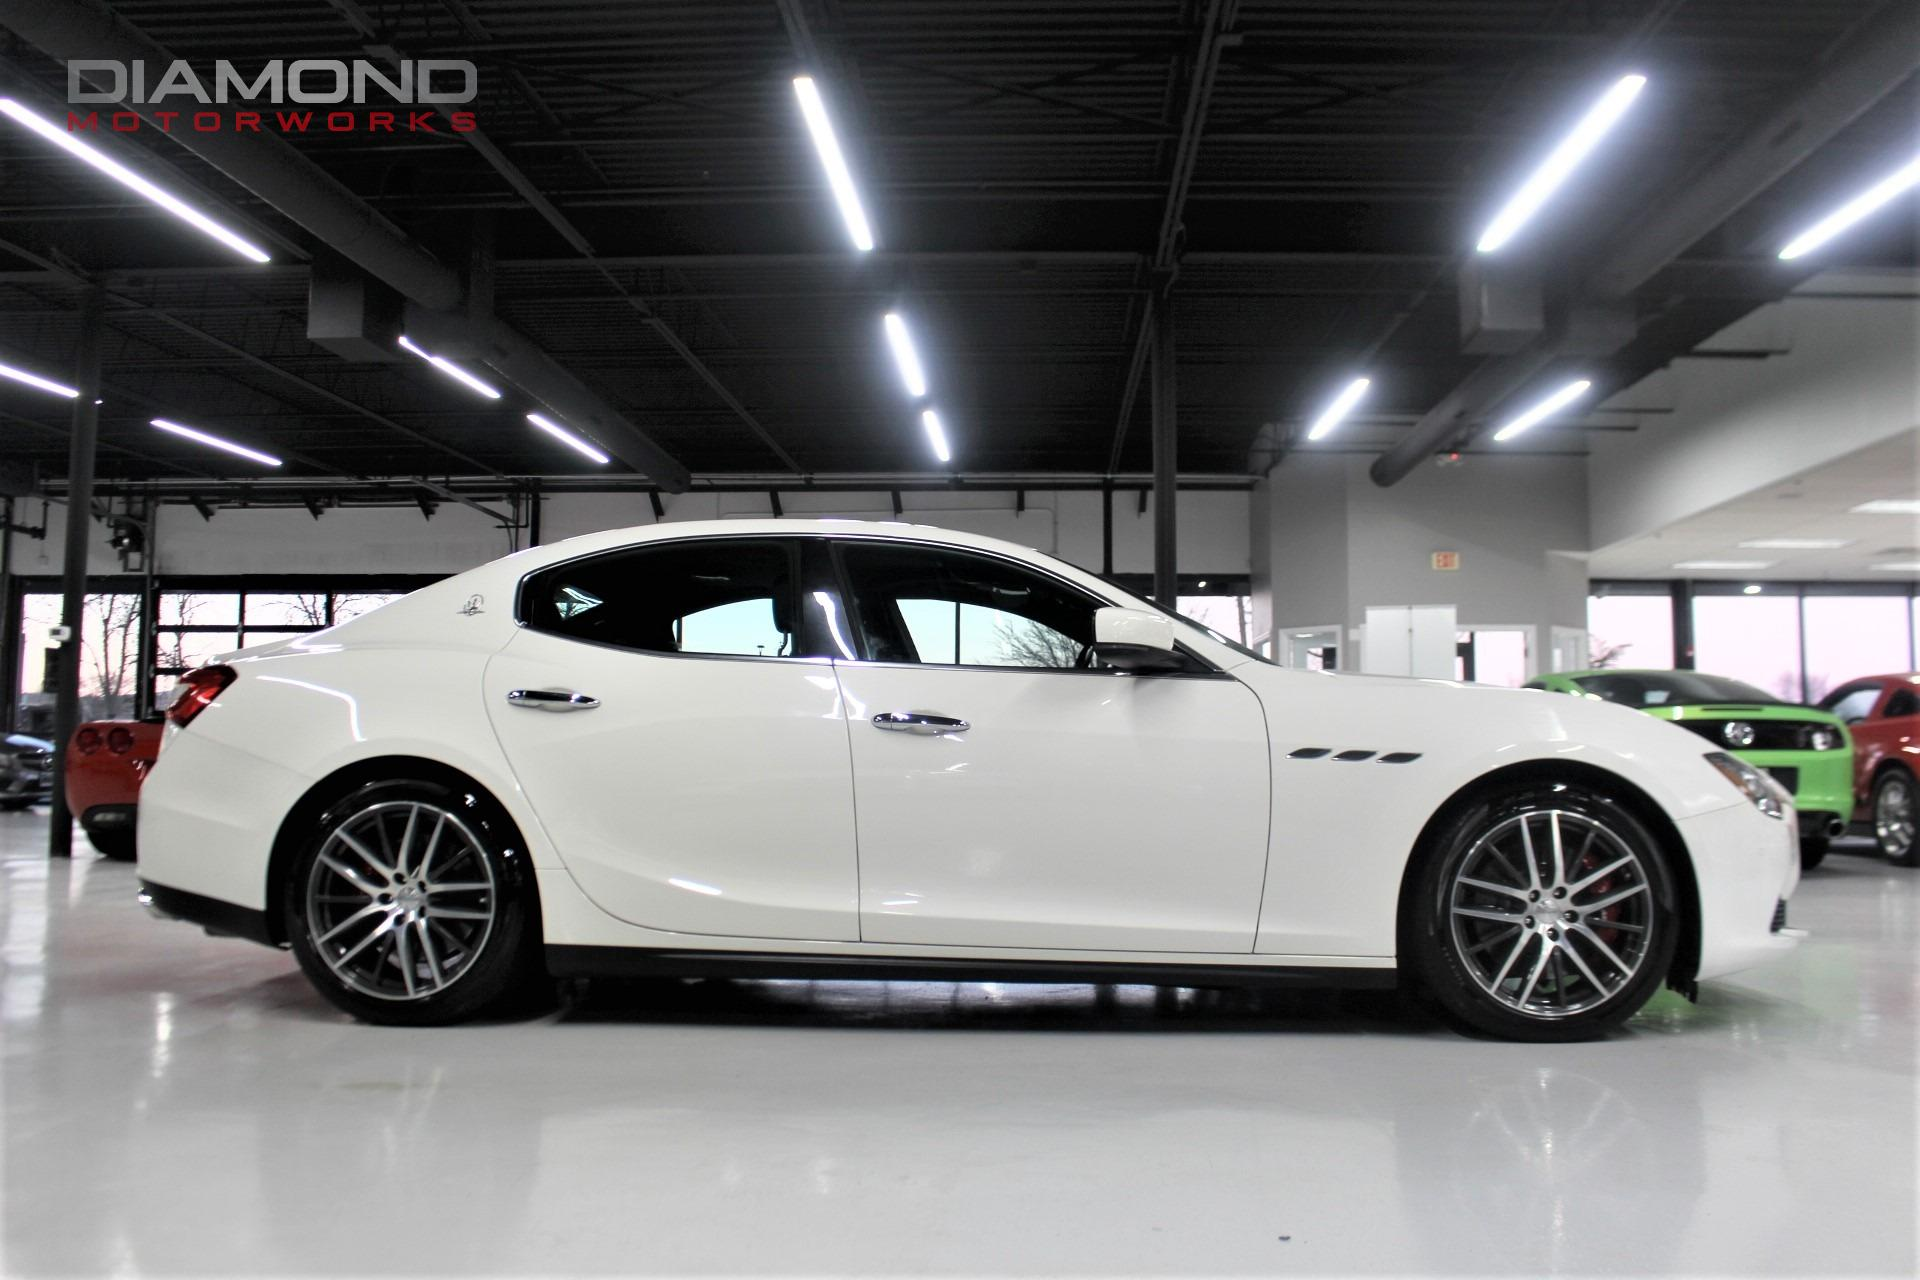 2015 Maserati Ghibli S Q4 Stock # 139053 for sale near Lisle